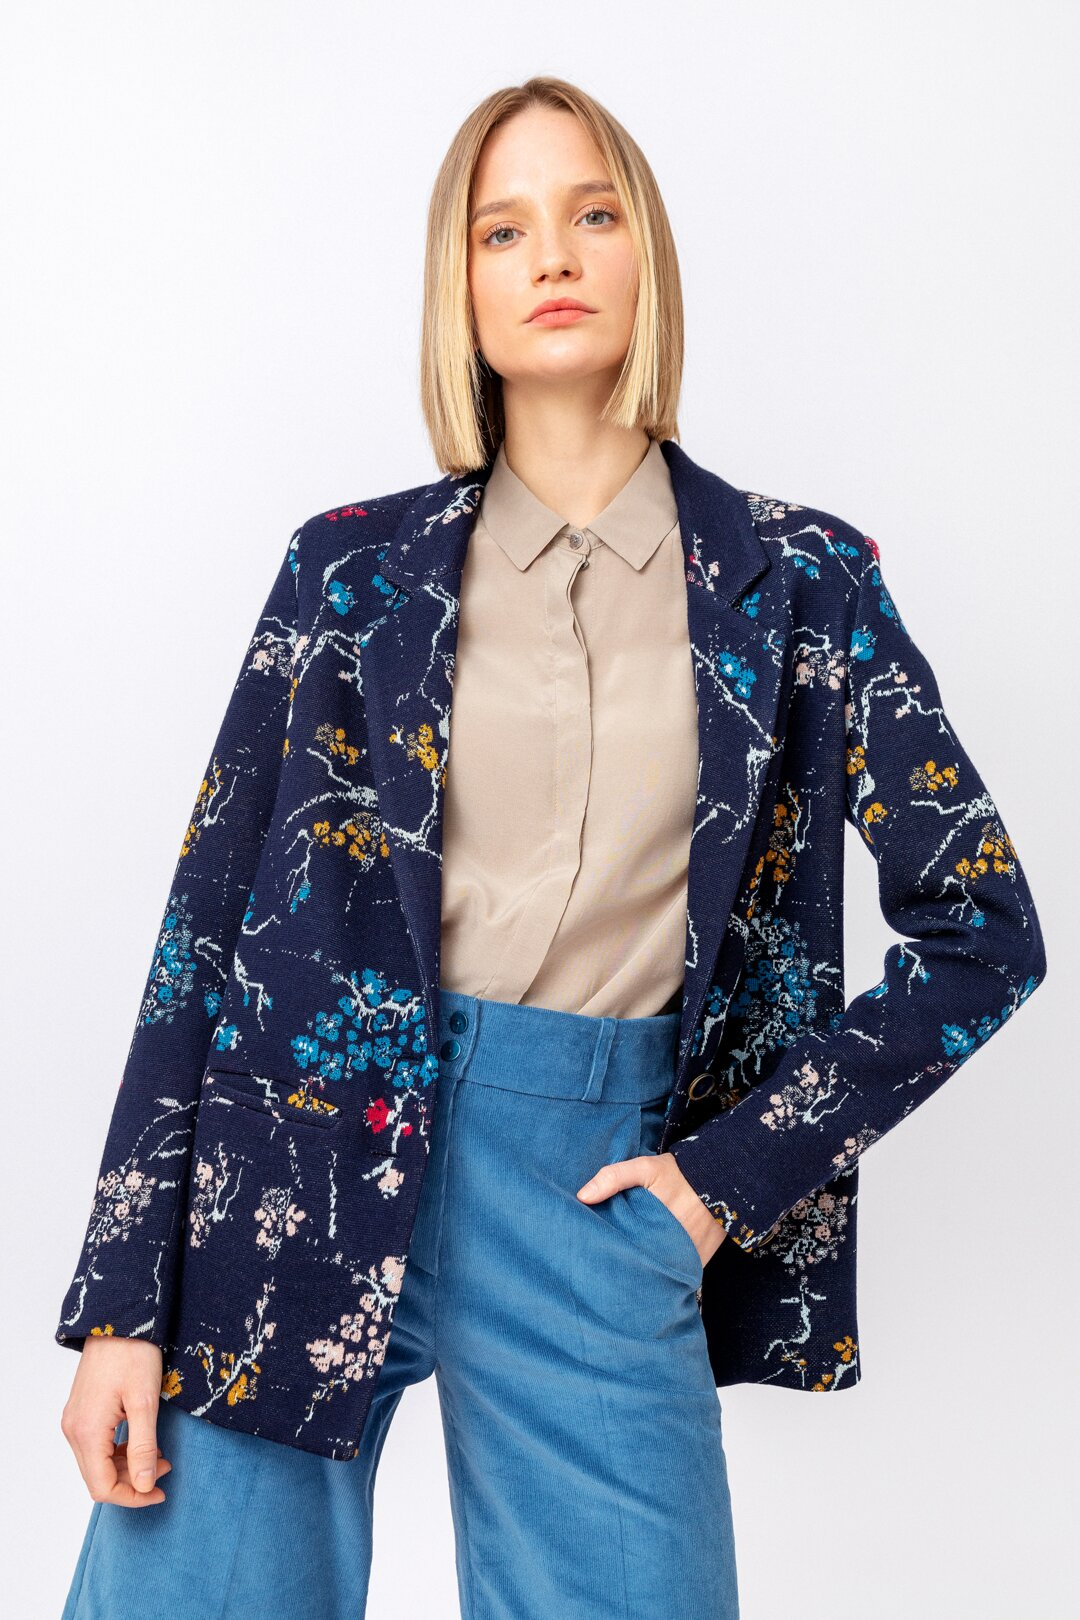 outfit-7c8a9502